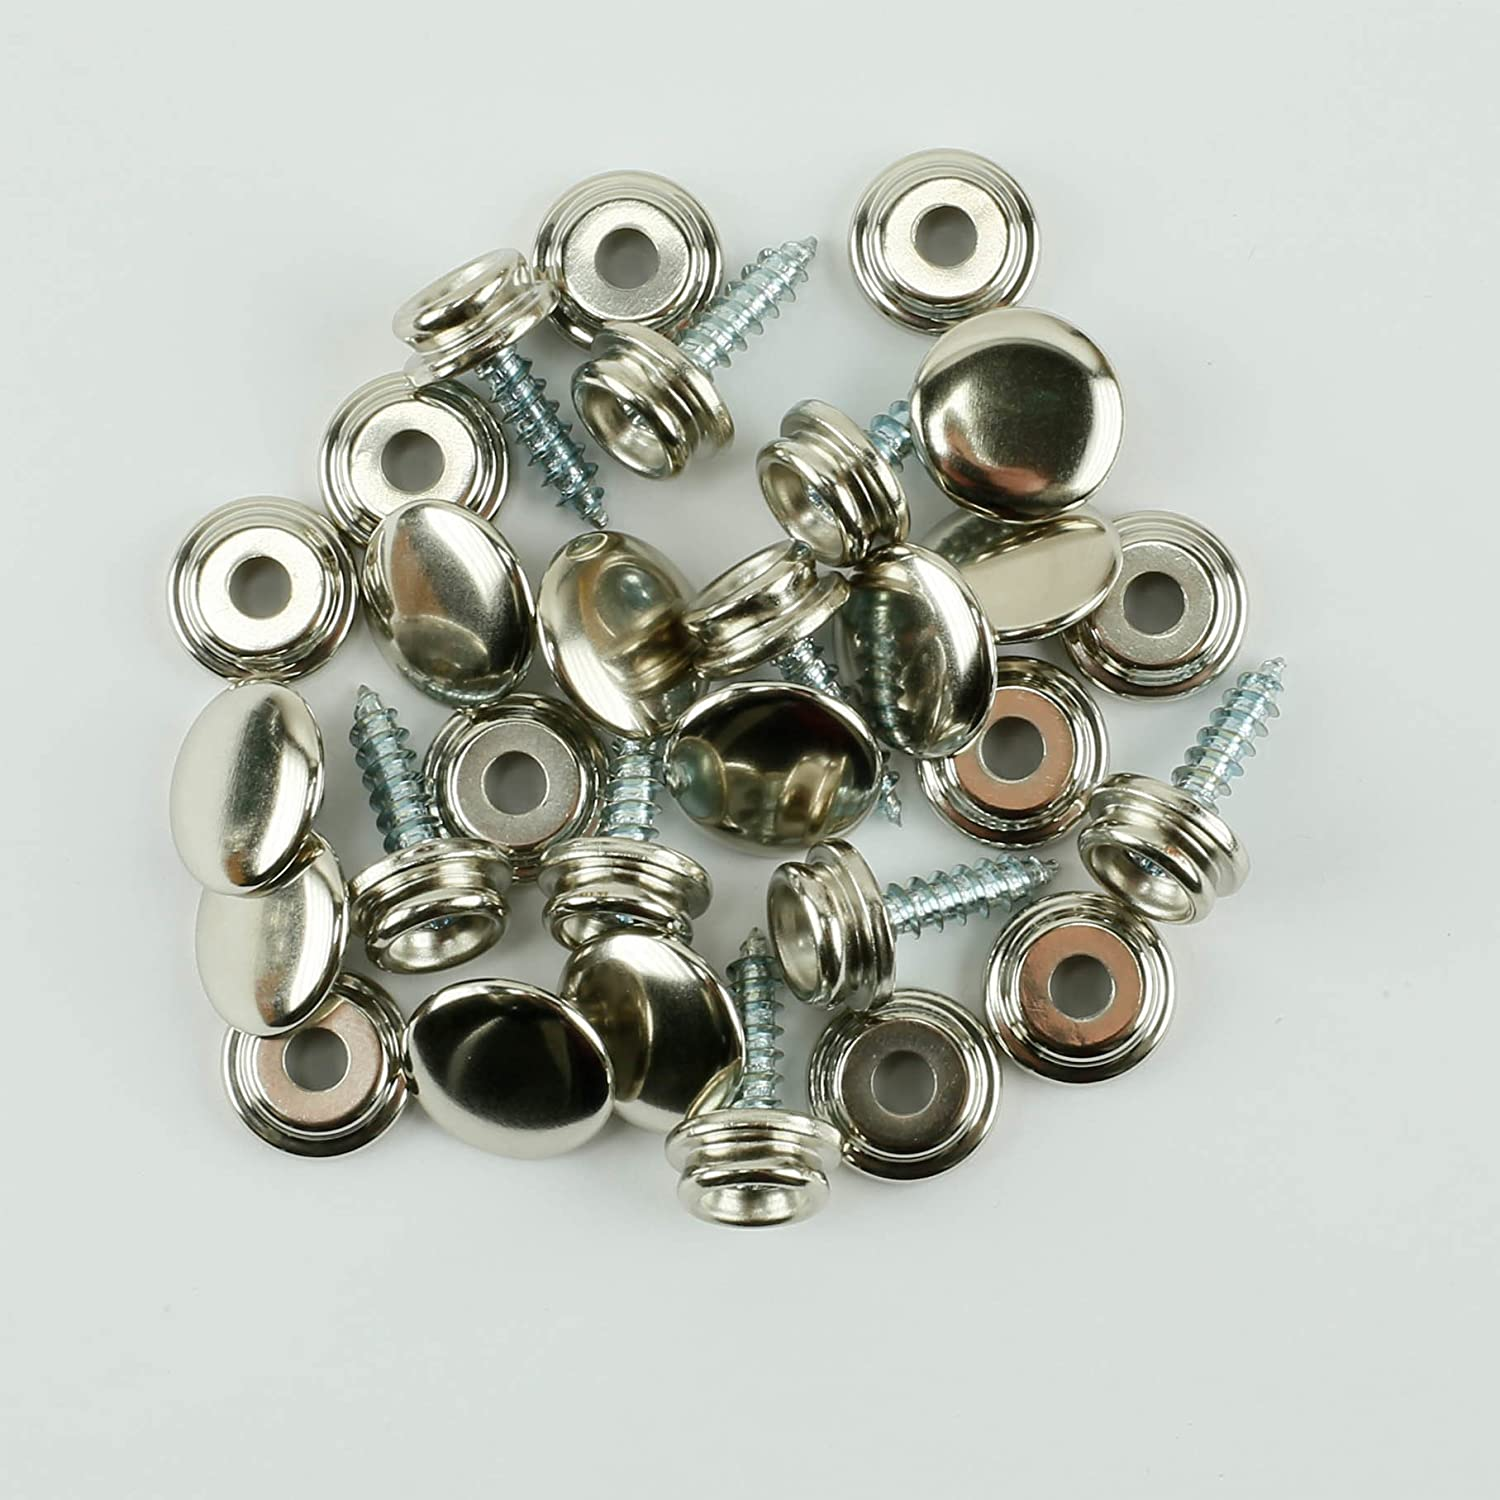 ProTool Screw-in Snap Stud Replacement Nickel Plated A surprise price is realized Kit Nashville-Davidson Mall Brass